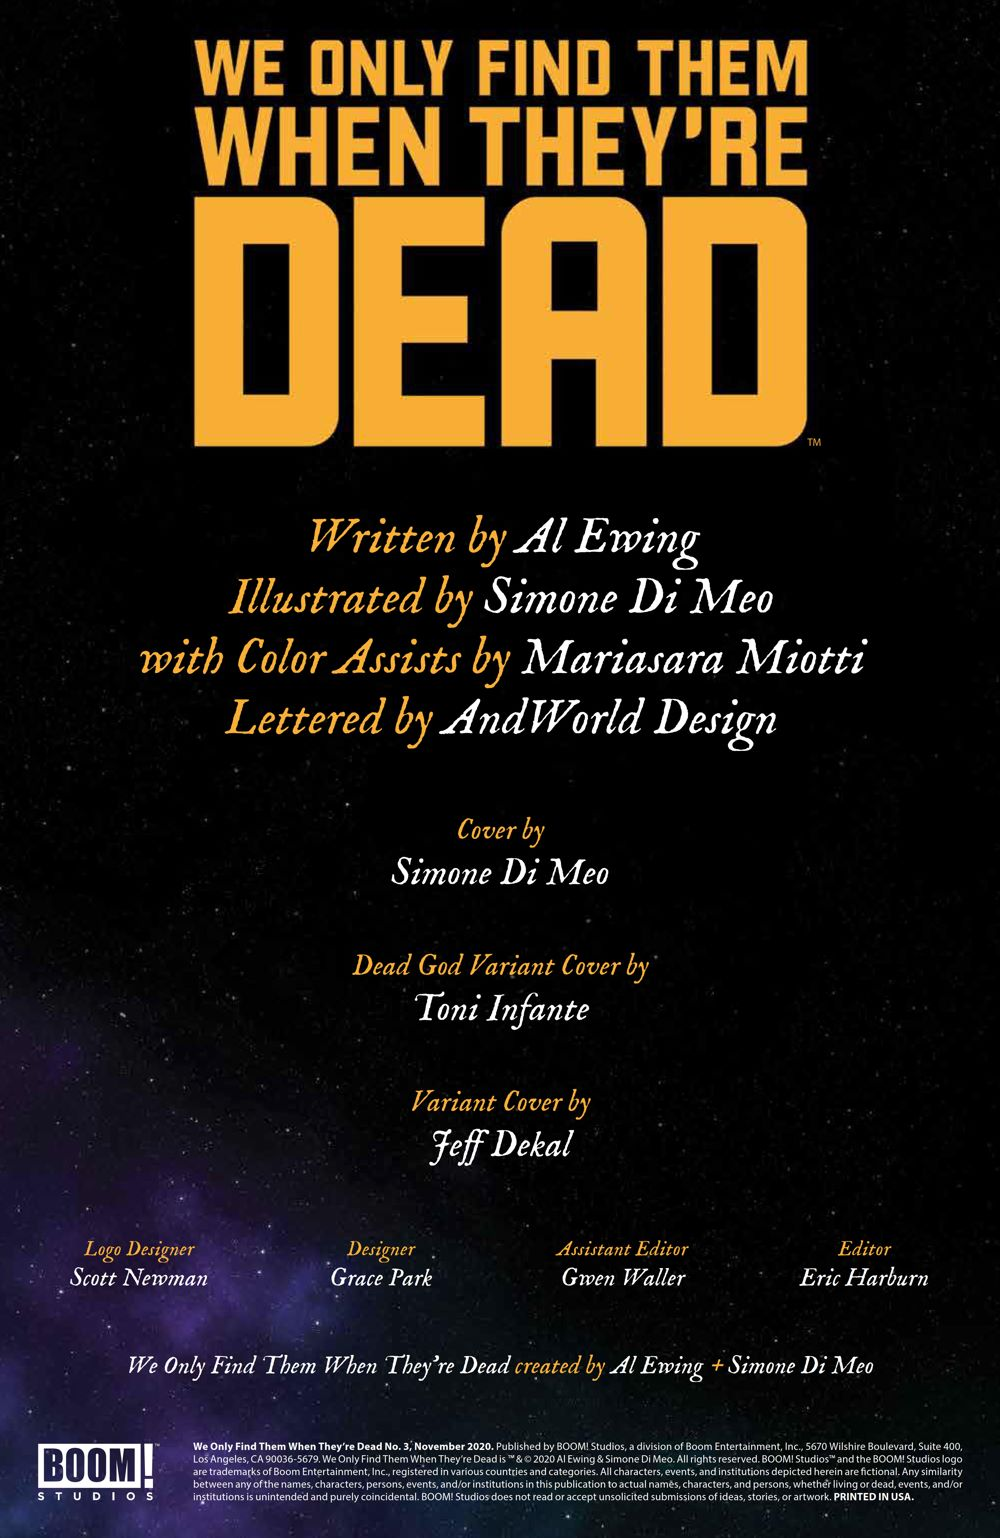 WeOnlyFindThem_003_PRESS_2 ComicList Previews: WE ONLY FIND THEM WHEN THEY'RE DEAD #3